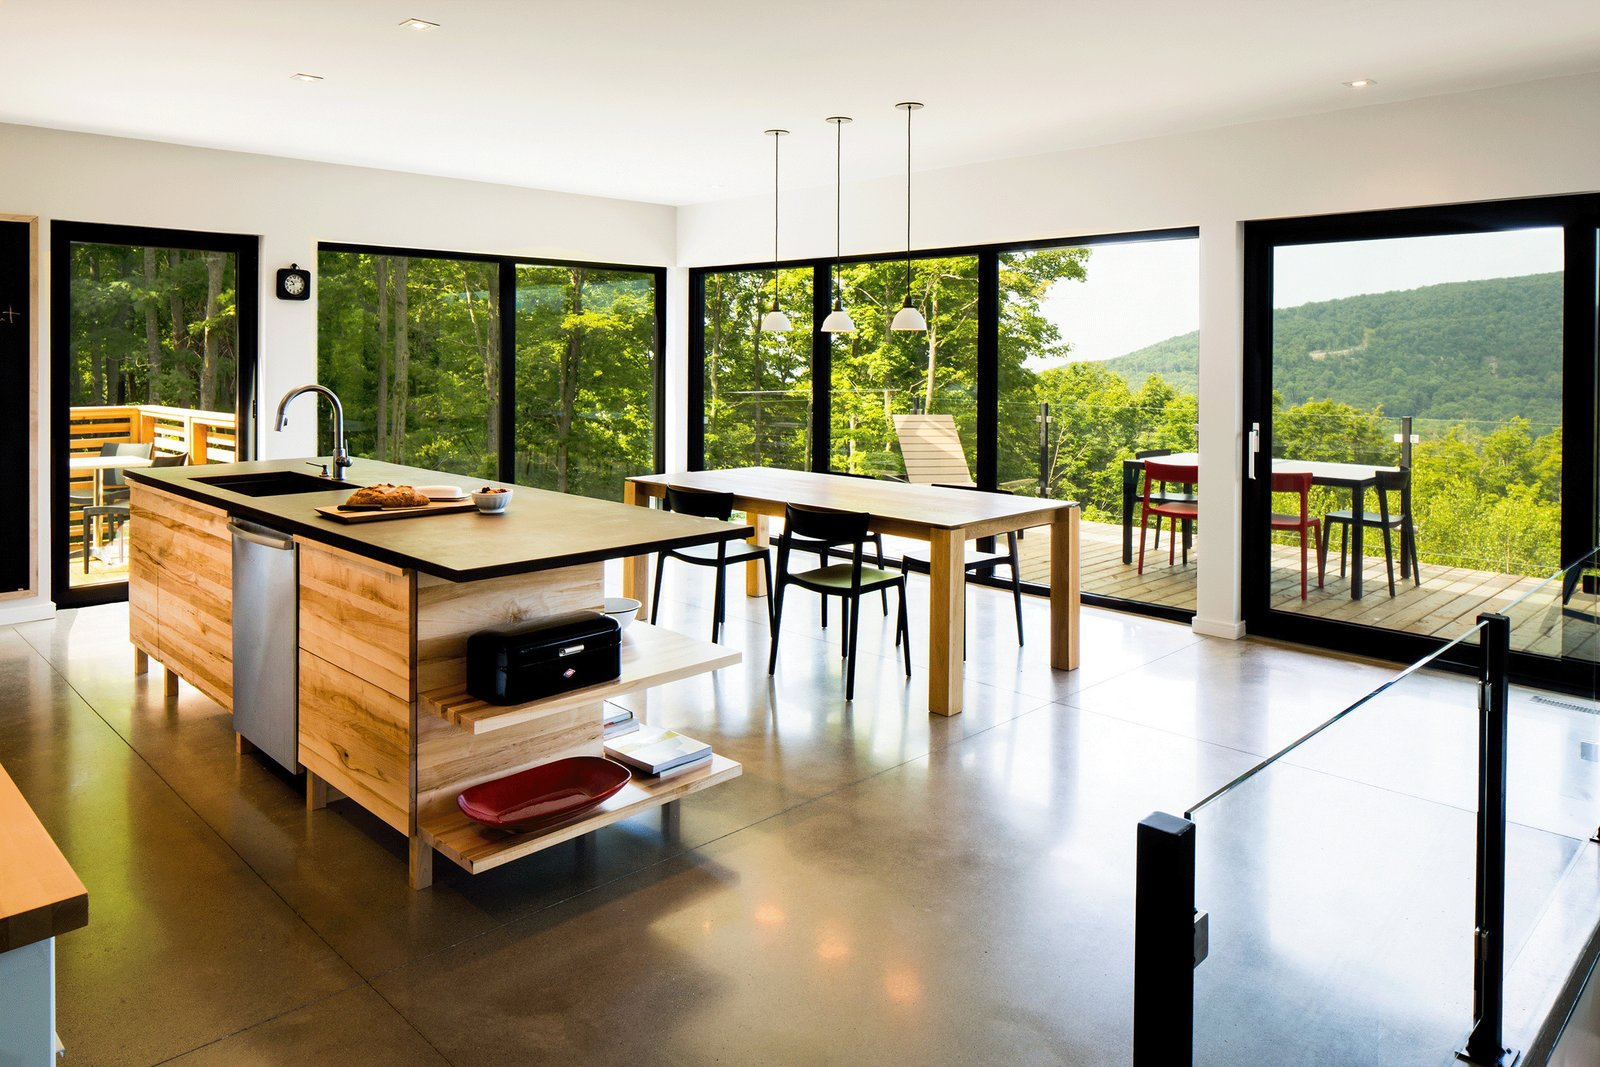 Tagged: Kitchen, Dishwasher, Wood Cabinet, Concrete Floor, Pendant Lighting, and Undermount Sink.  The Desjardins Residence by BONE Structure